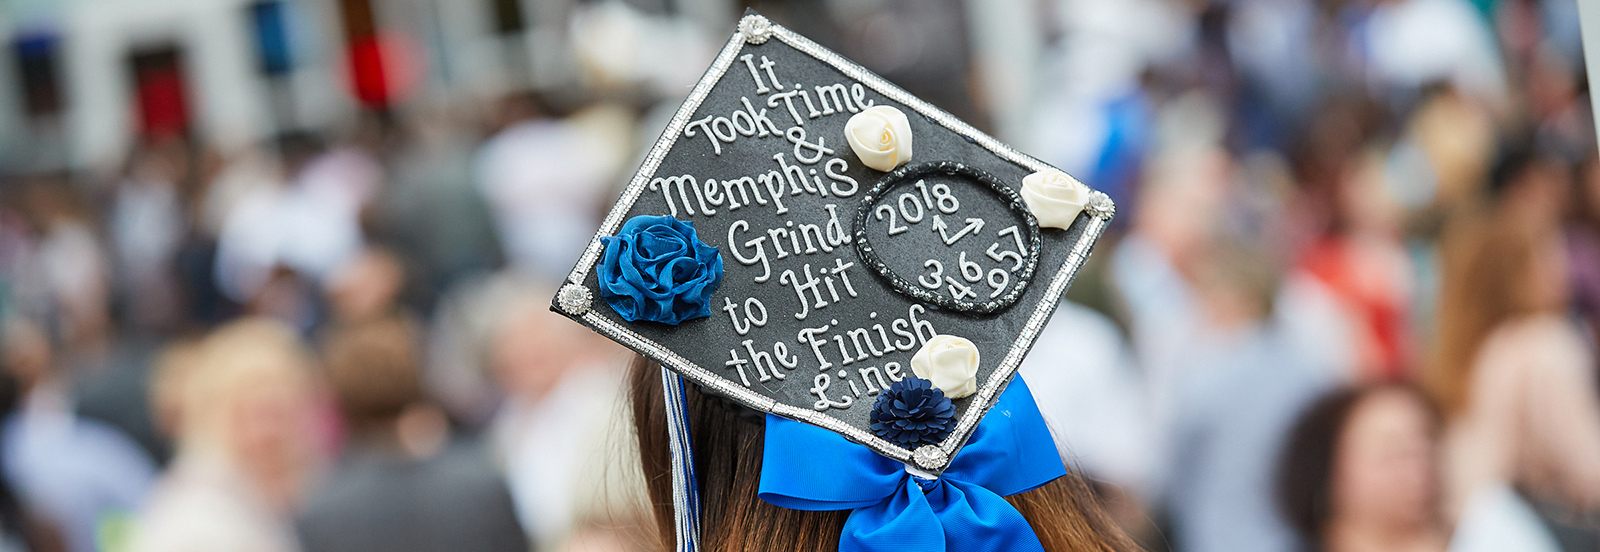 """It took time & Memphis Grind to hit the Finish Line"" message on mortar board"